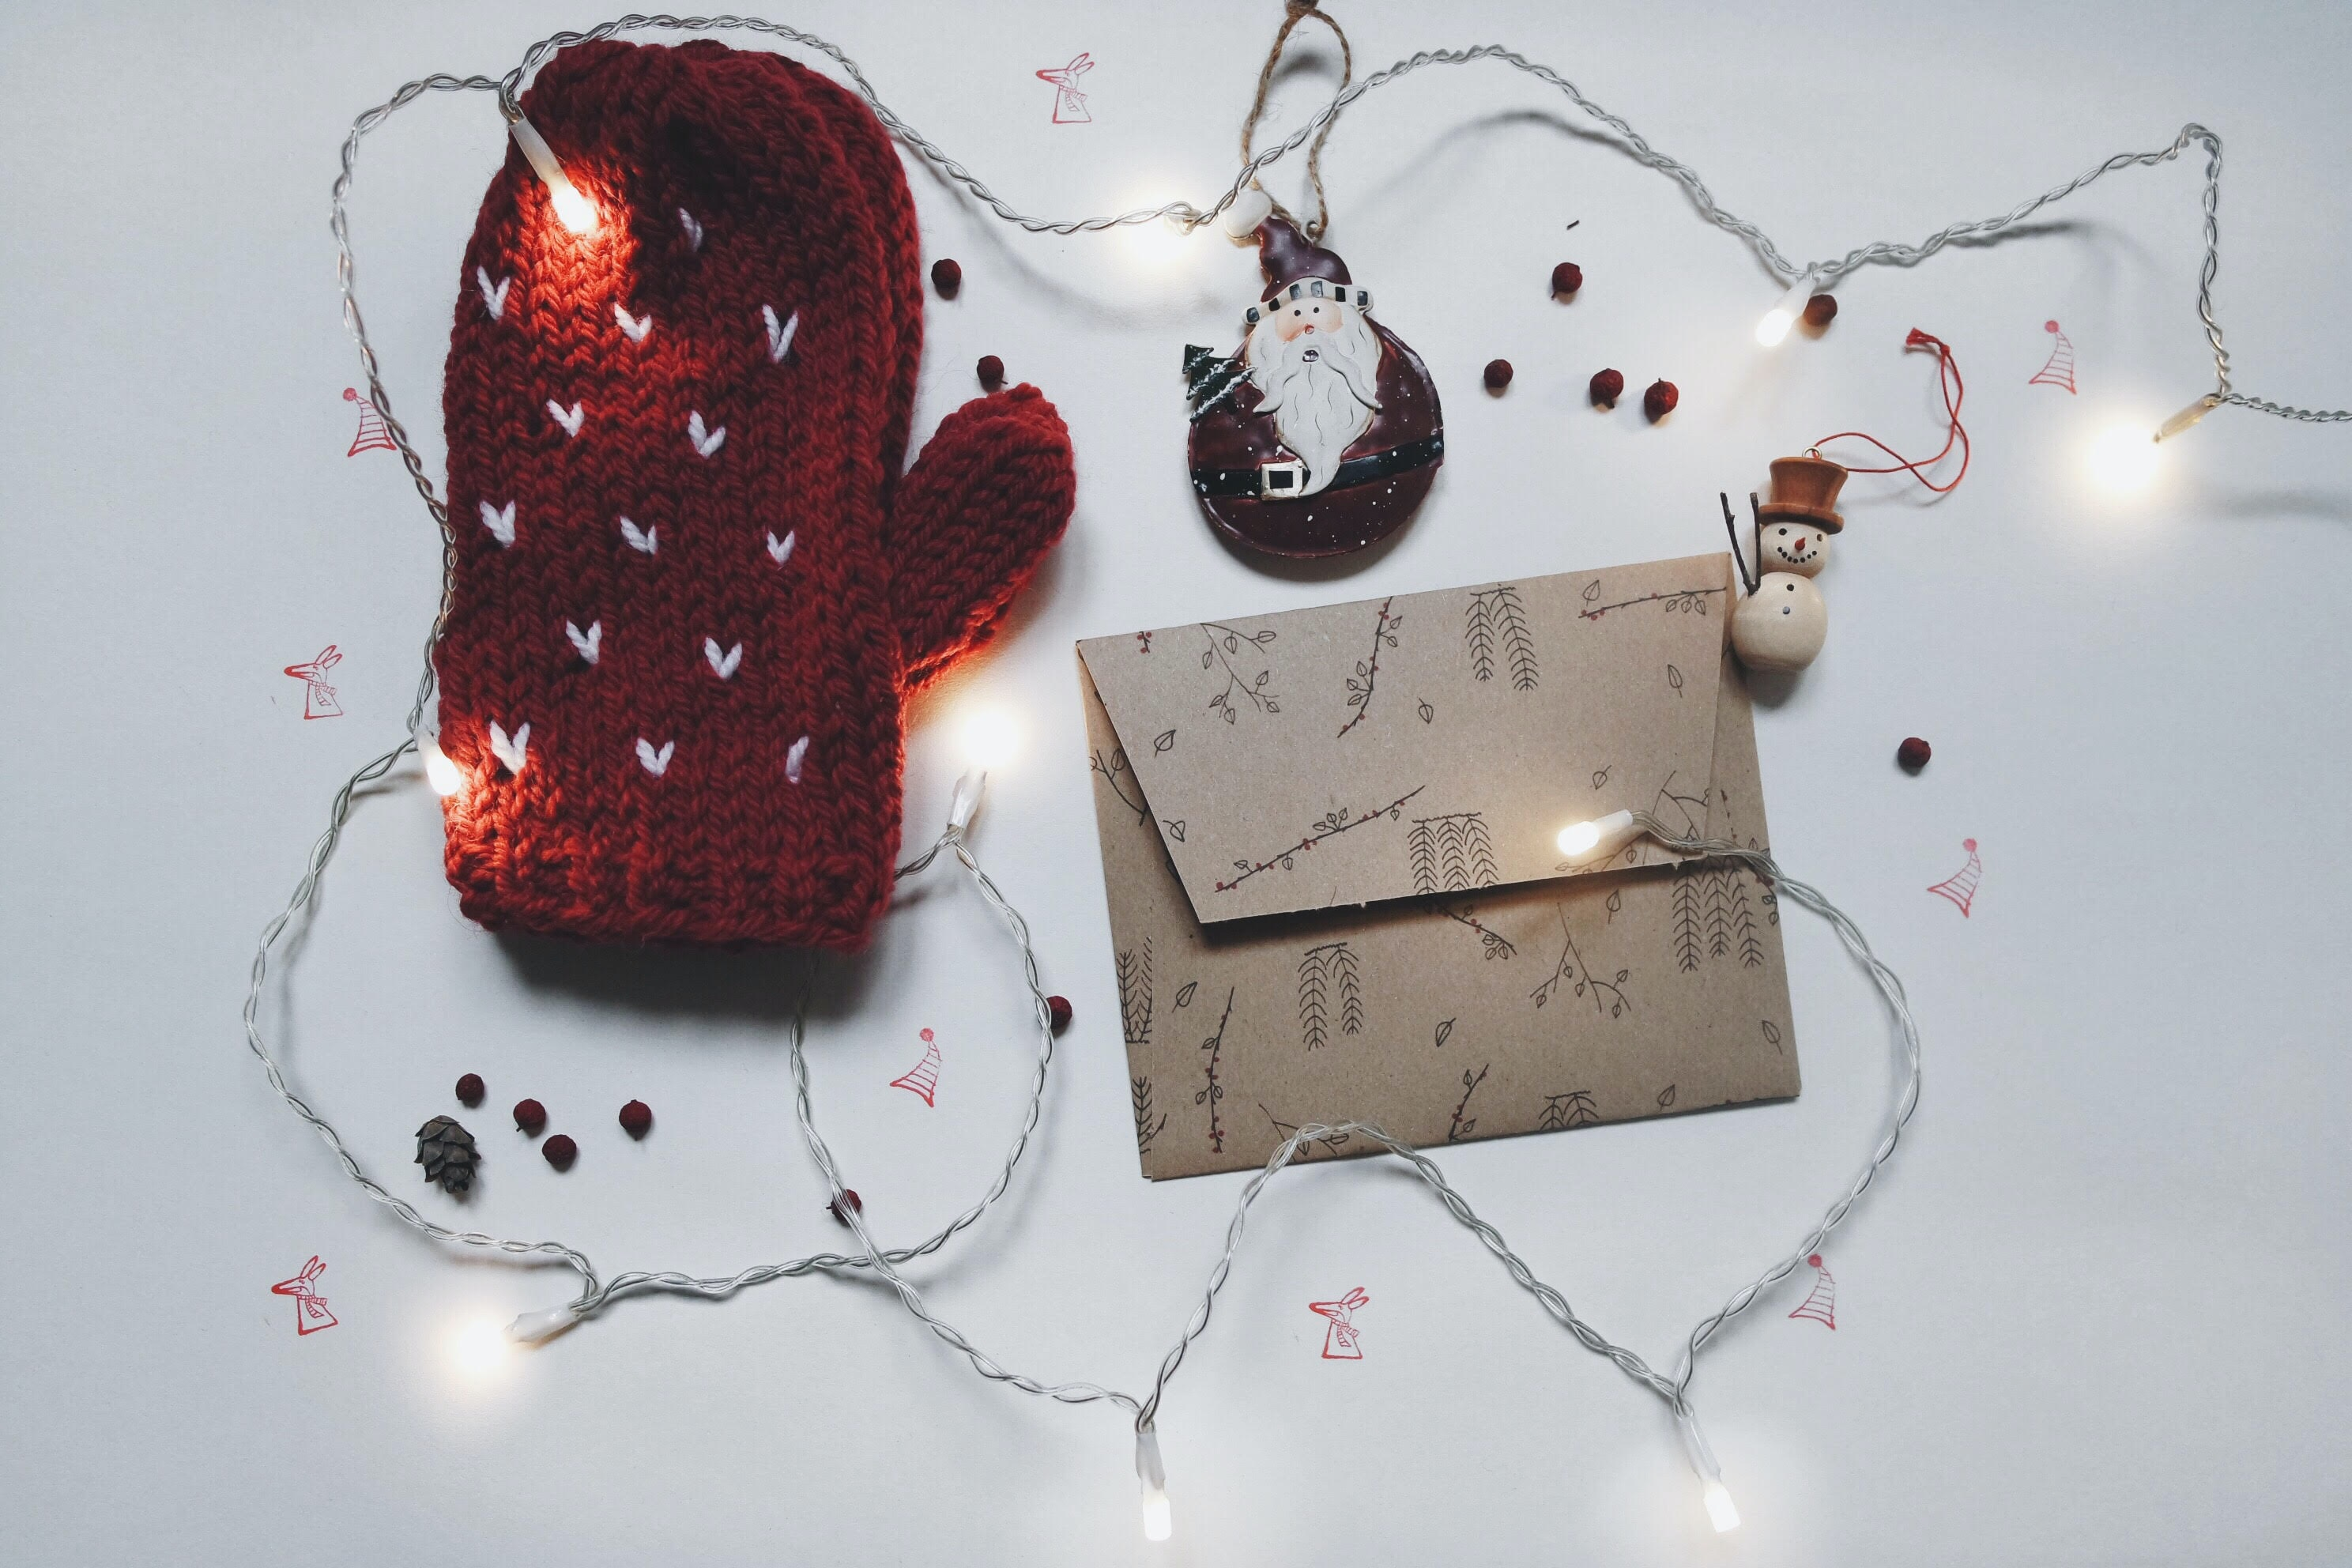 A winter mitt, card envelope and string tree lights.